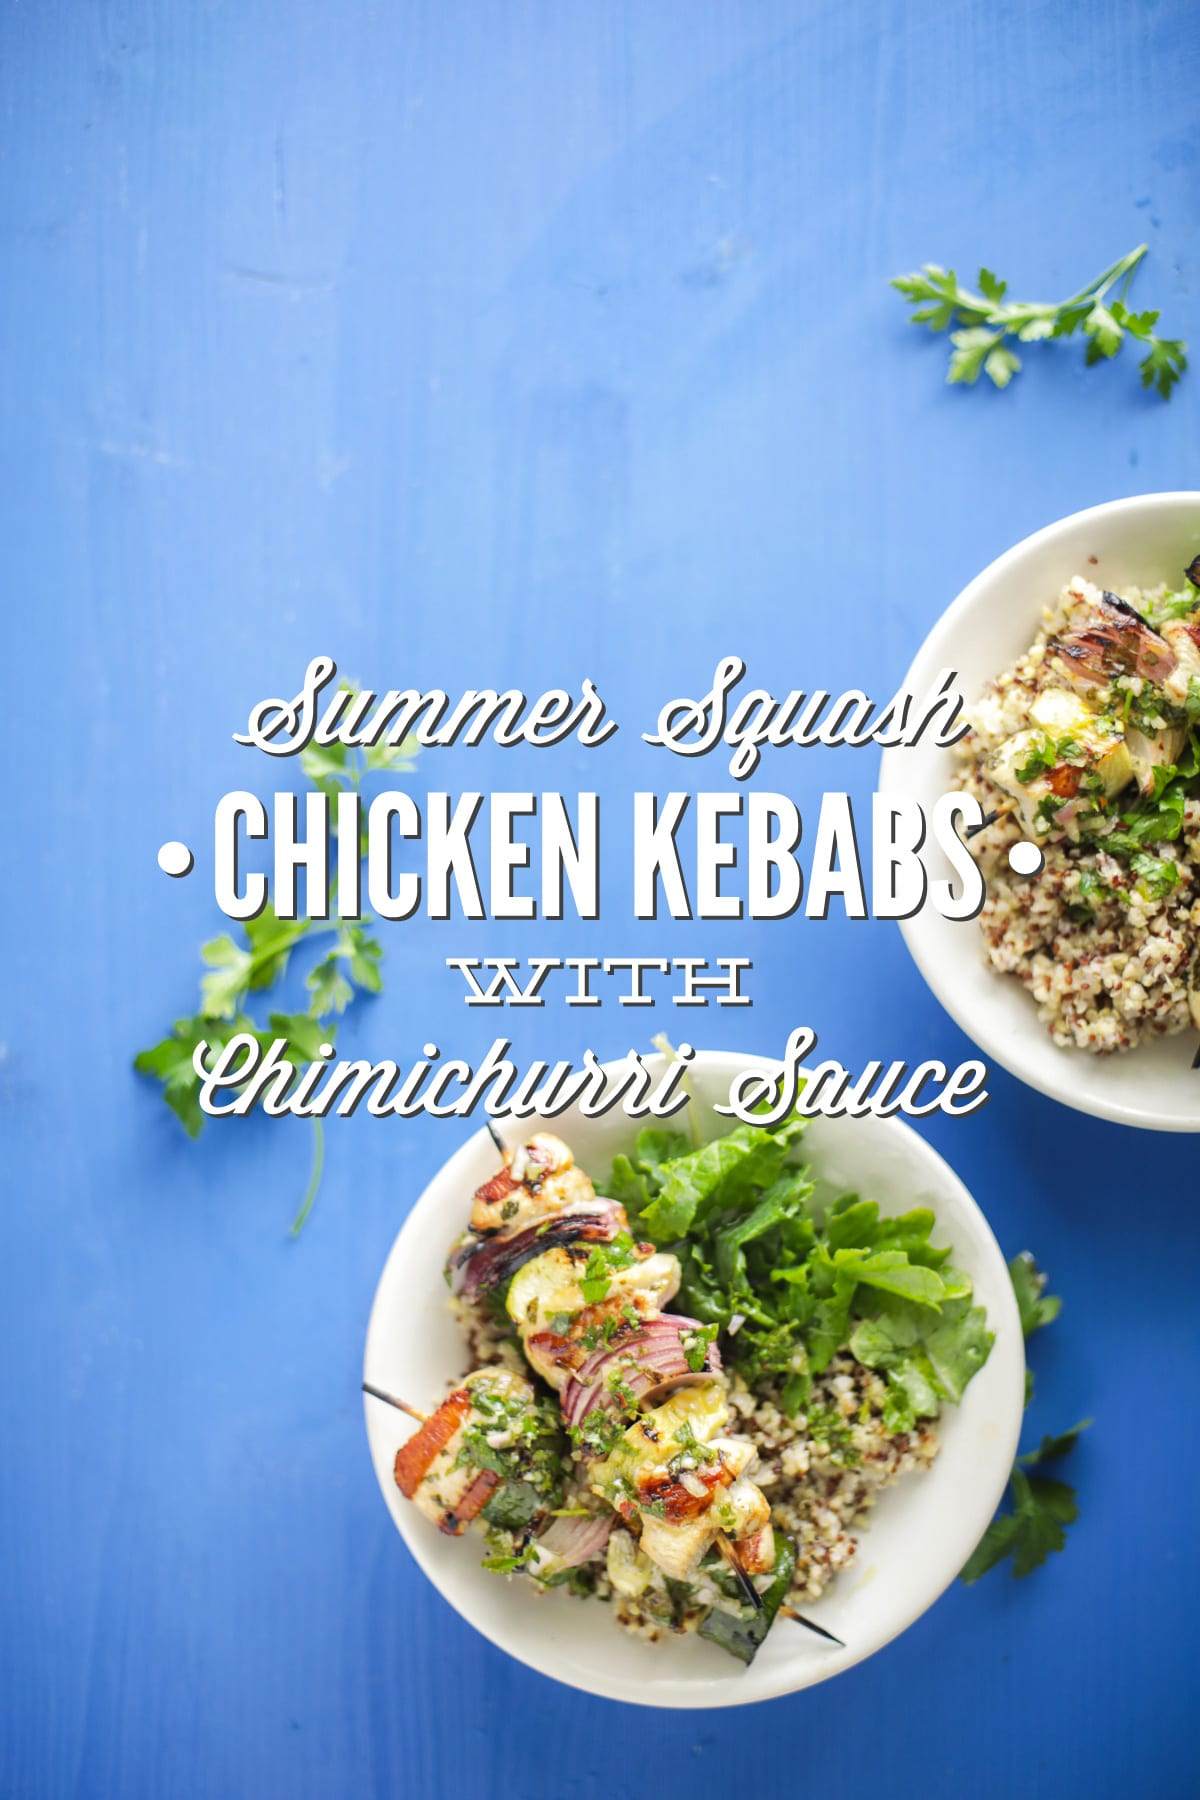 Summer Squash Chicken Kebabs with Chimichurri Sauce